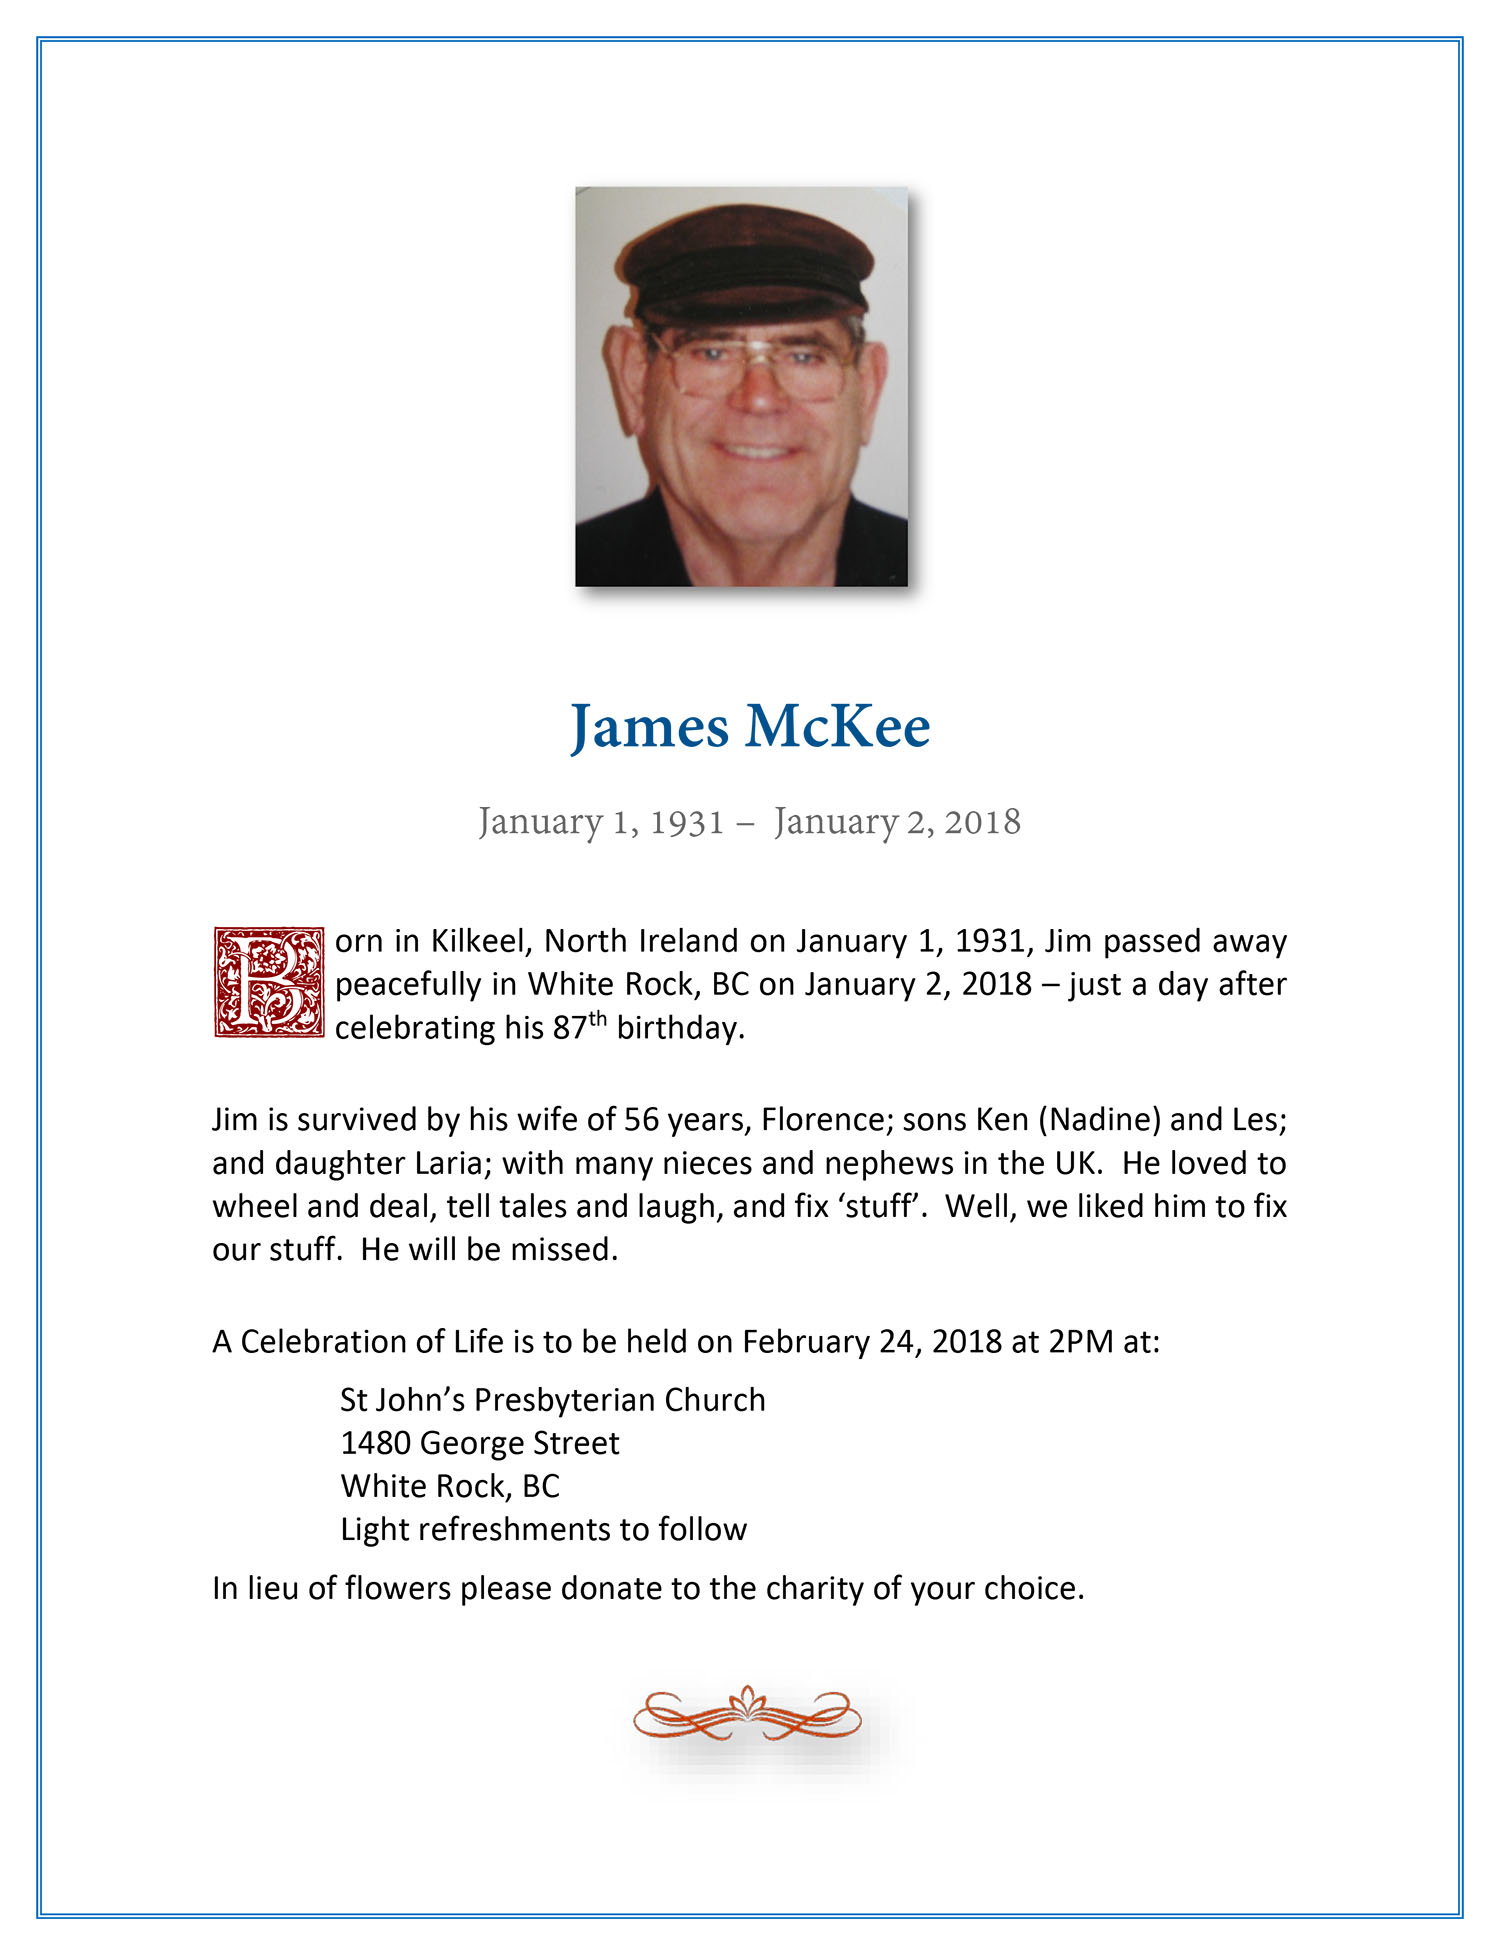 Obituary for James McKee